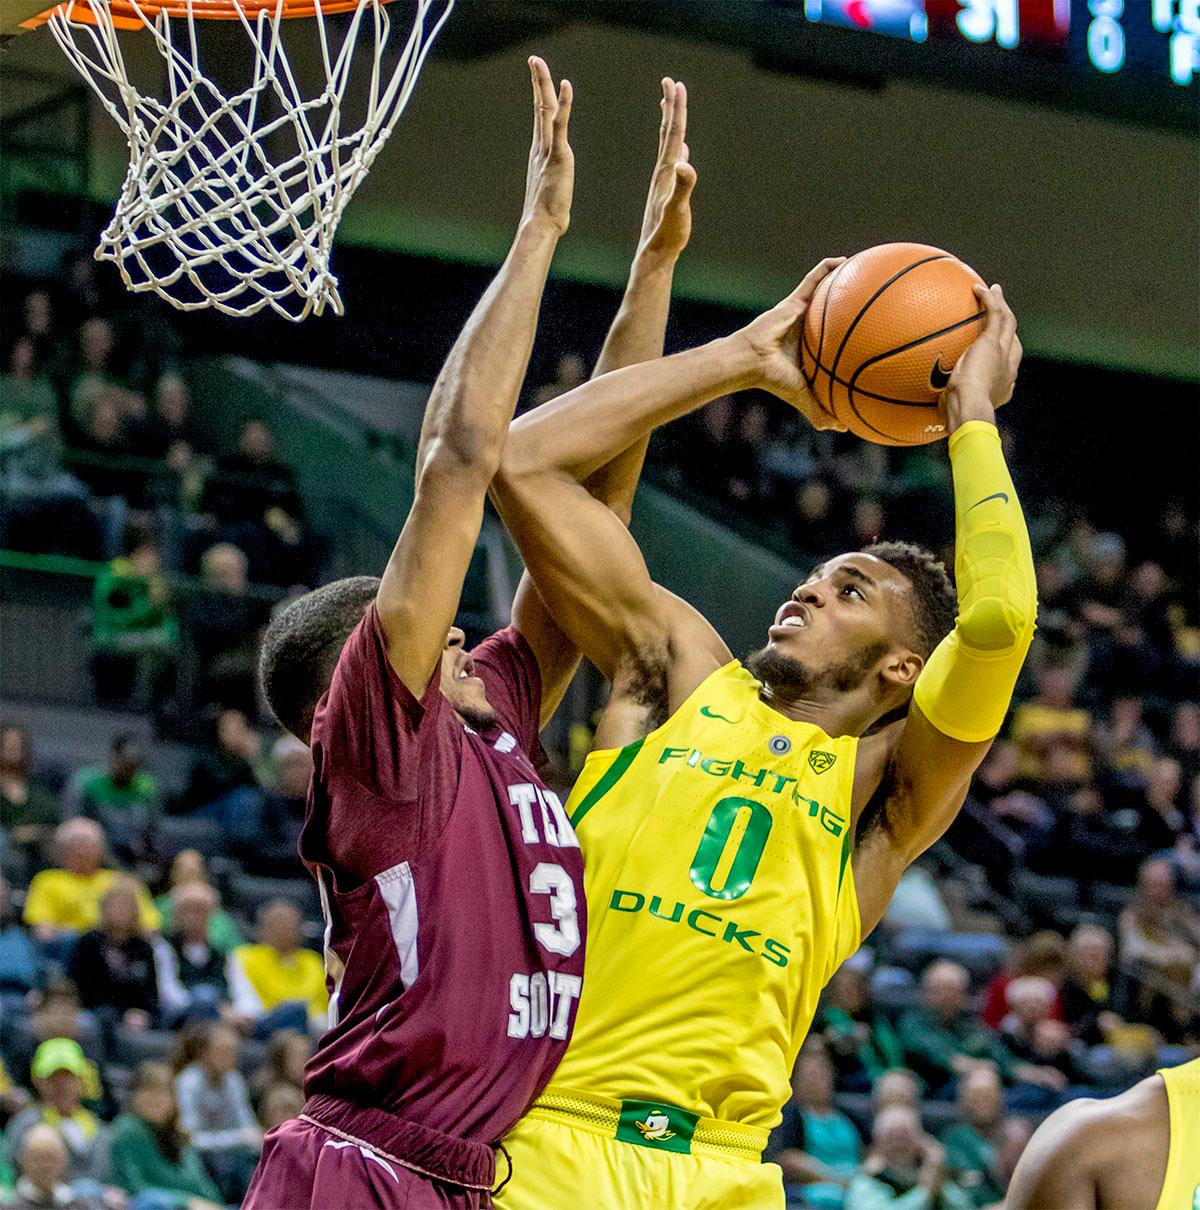 The Duck's Troy Brown (#0) makes a throw for the basket as the Tiger's Robert Lewis (#33) tries to block the shot. The Oregon Ducks defeated Texas Southern Tigers 74-68. The Ducks are now 7-3 overall in the Pac-12. Photo by August Frank. Oregon News Lab